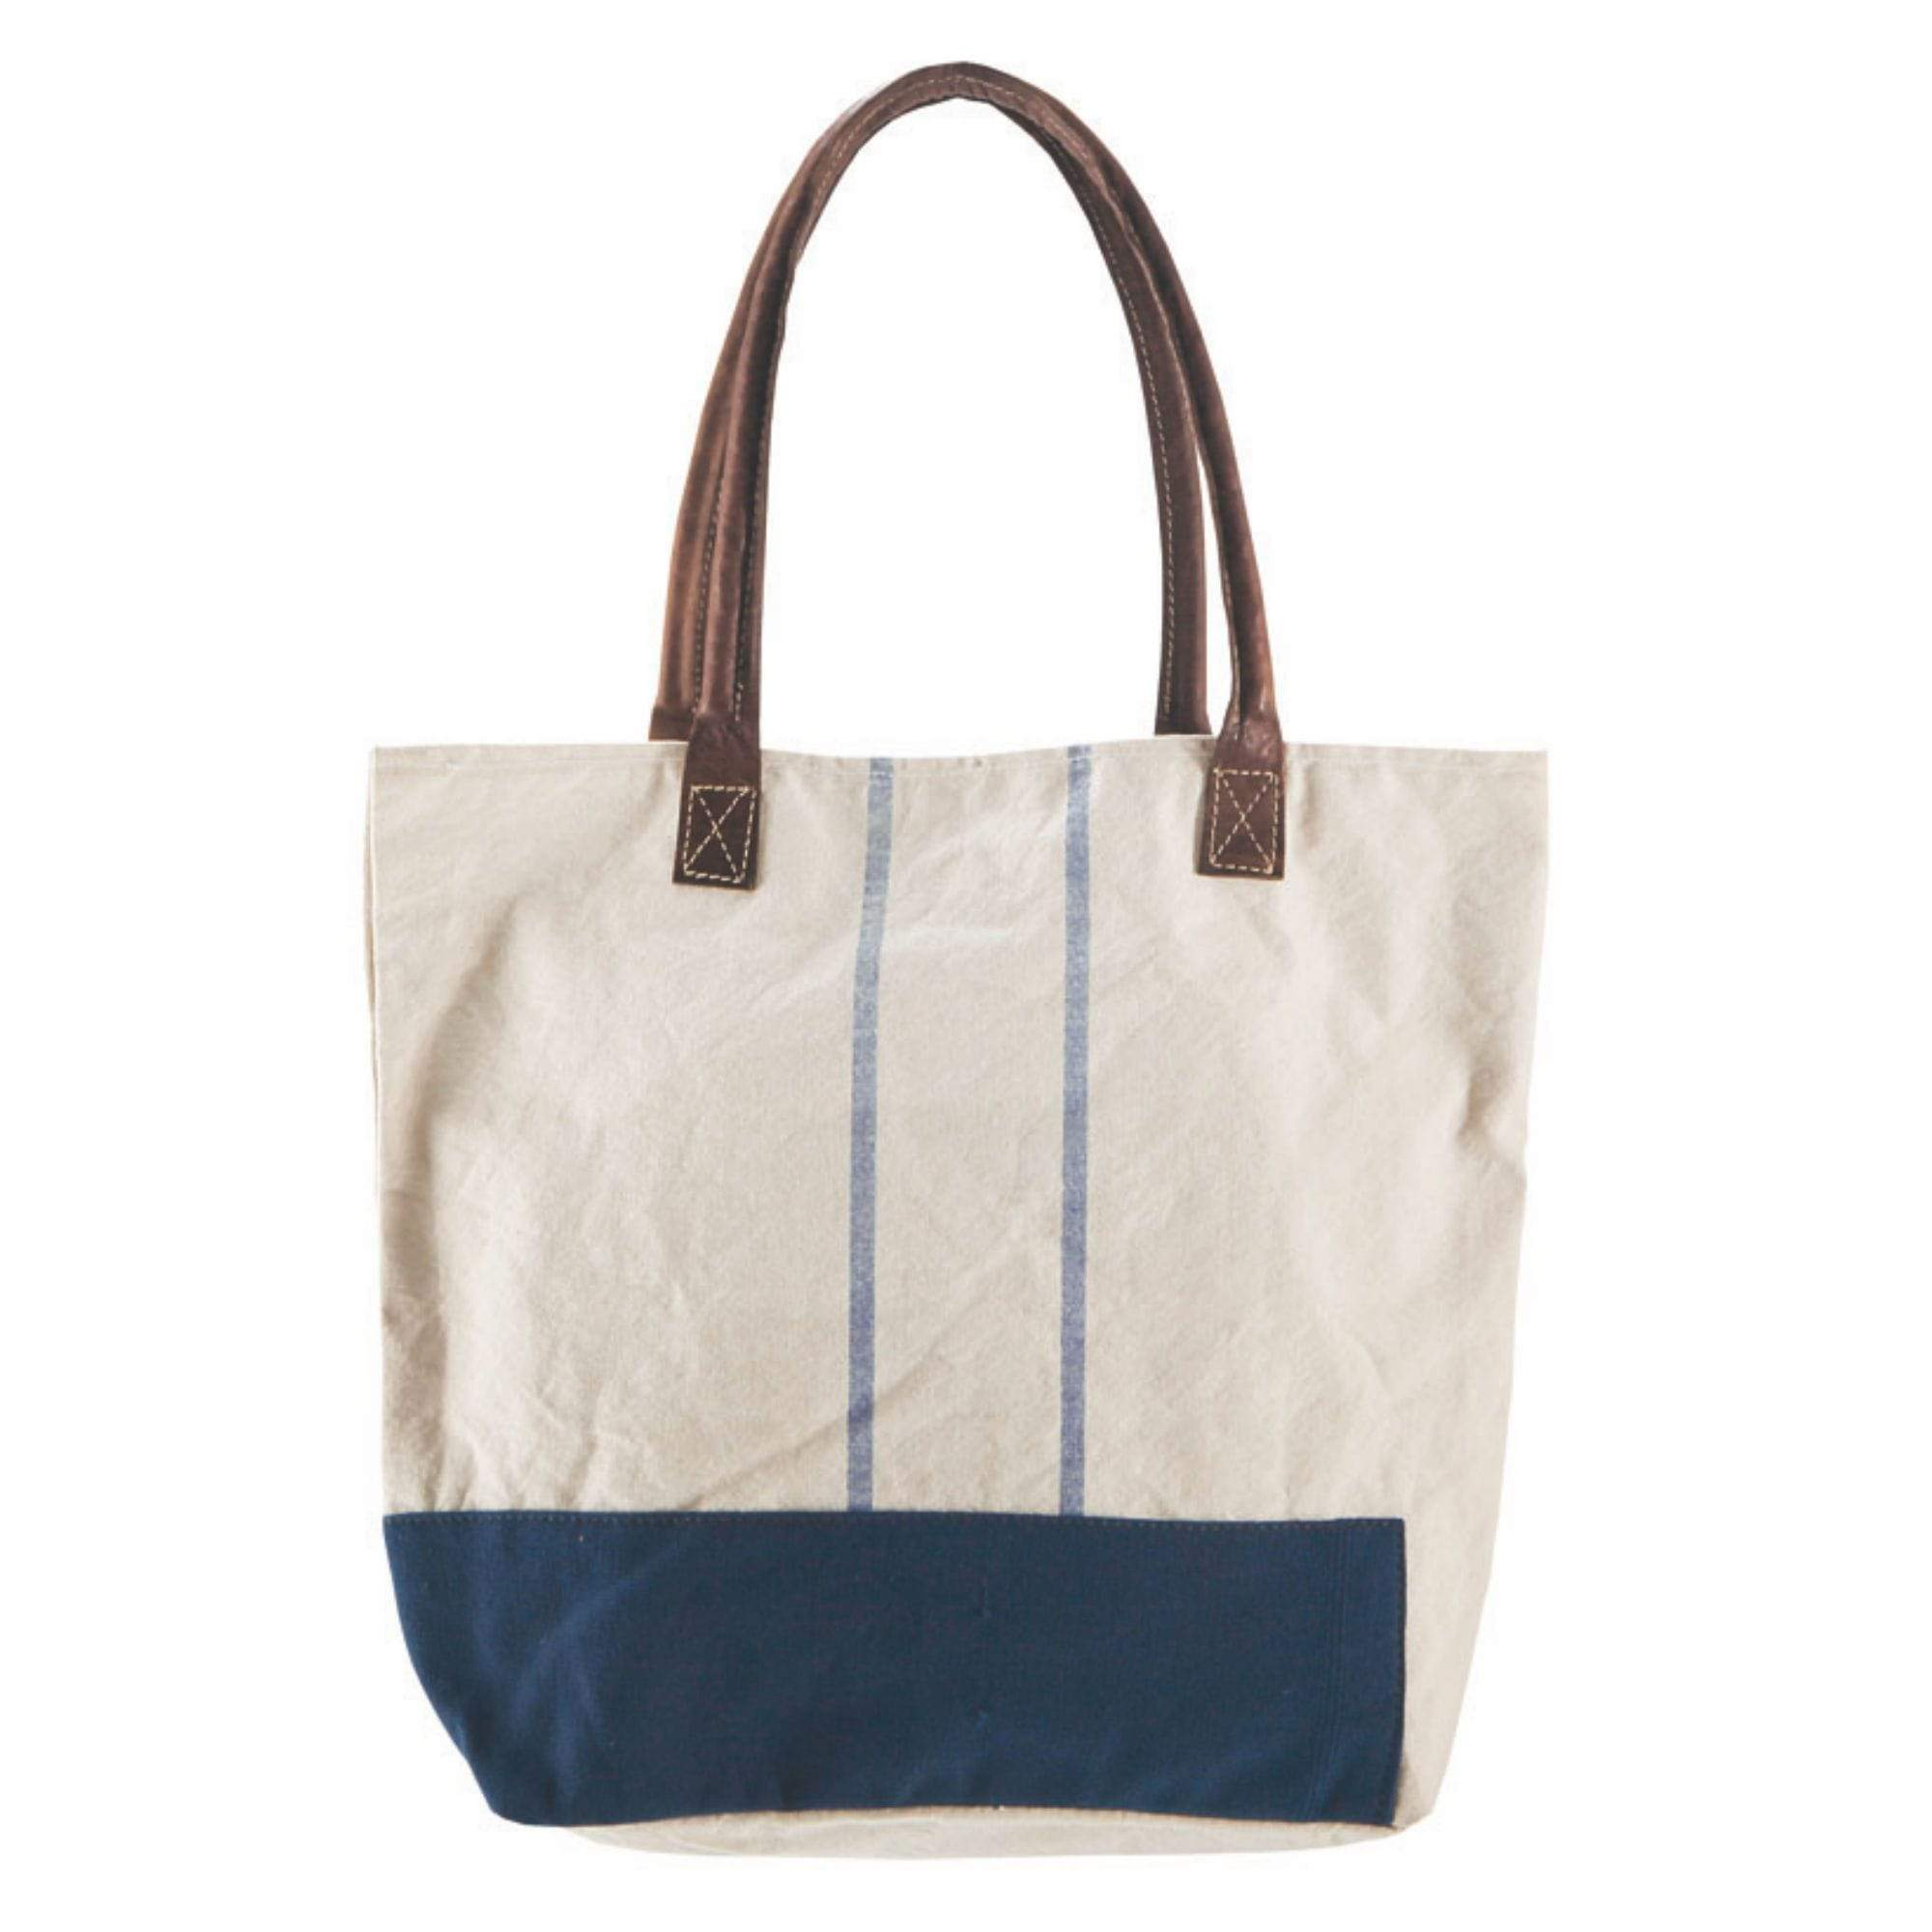 Batela Giftware-Bags-Navy and White Bag